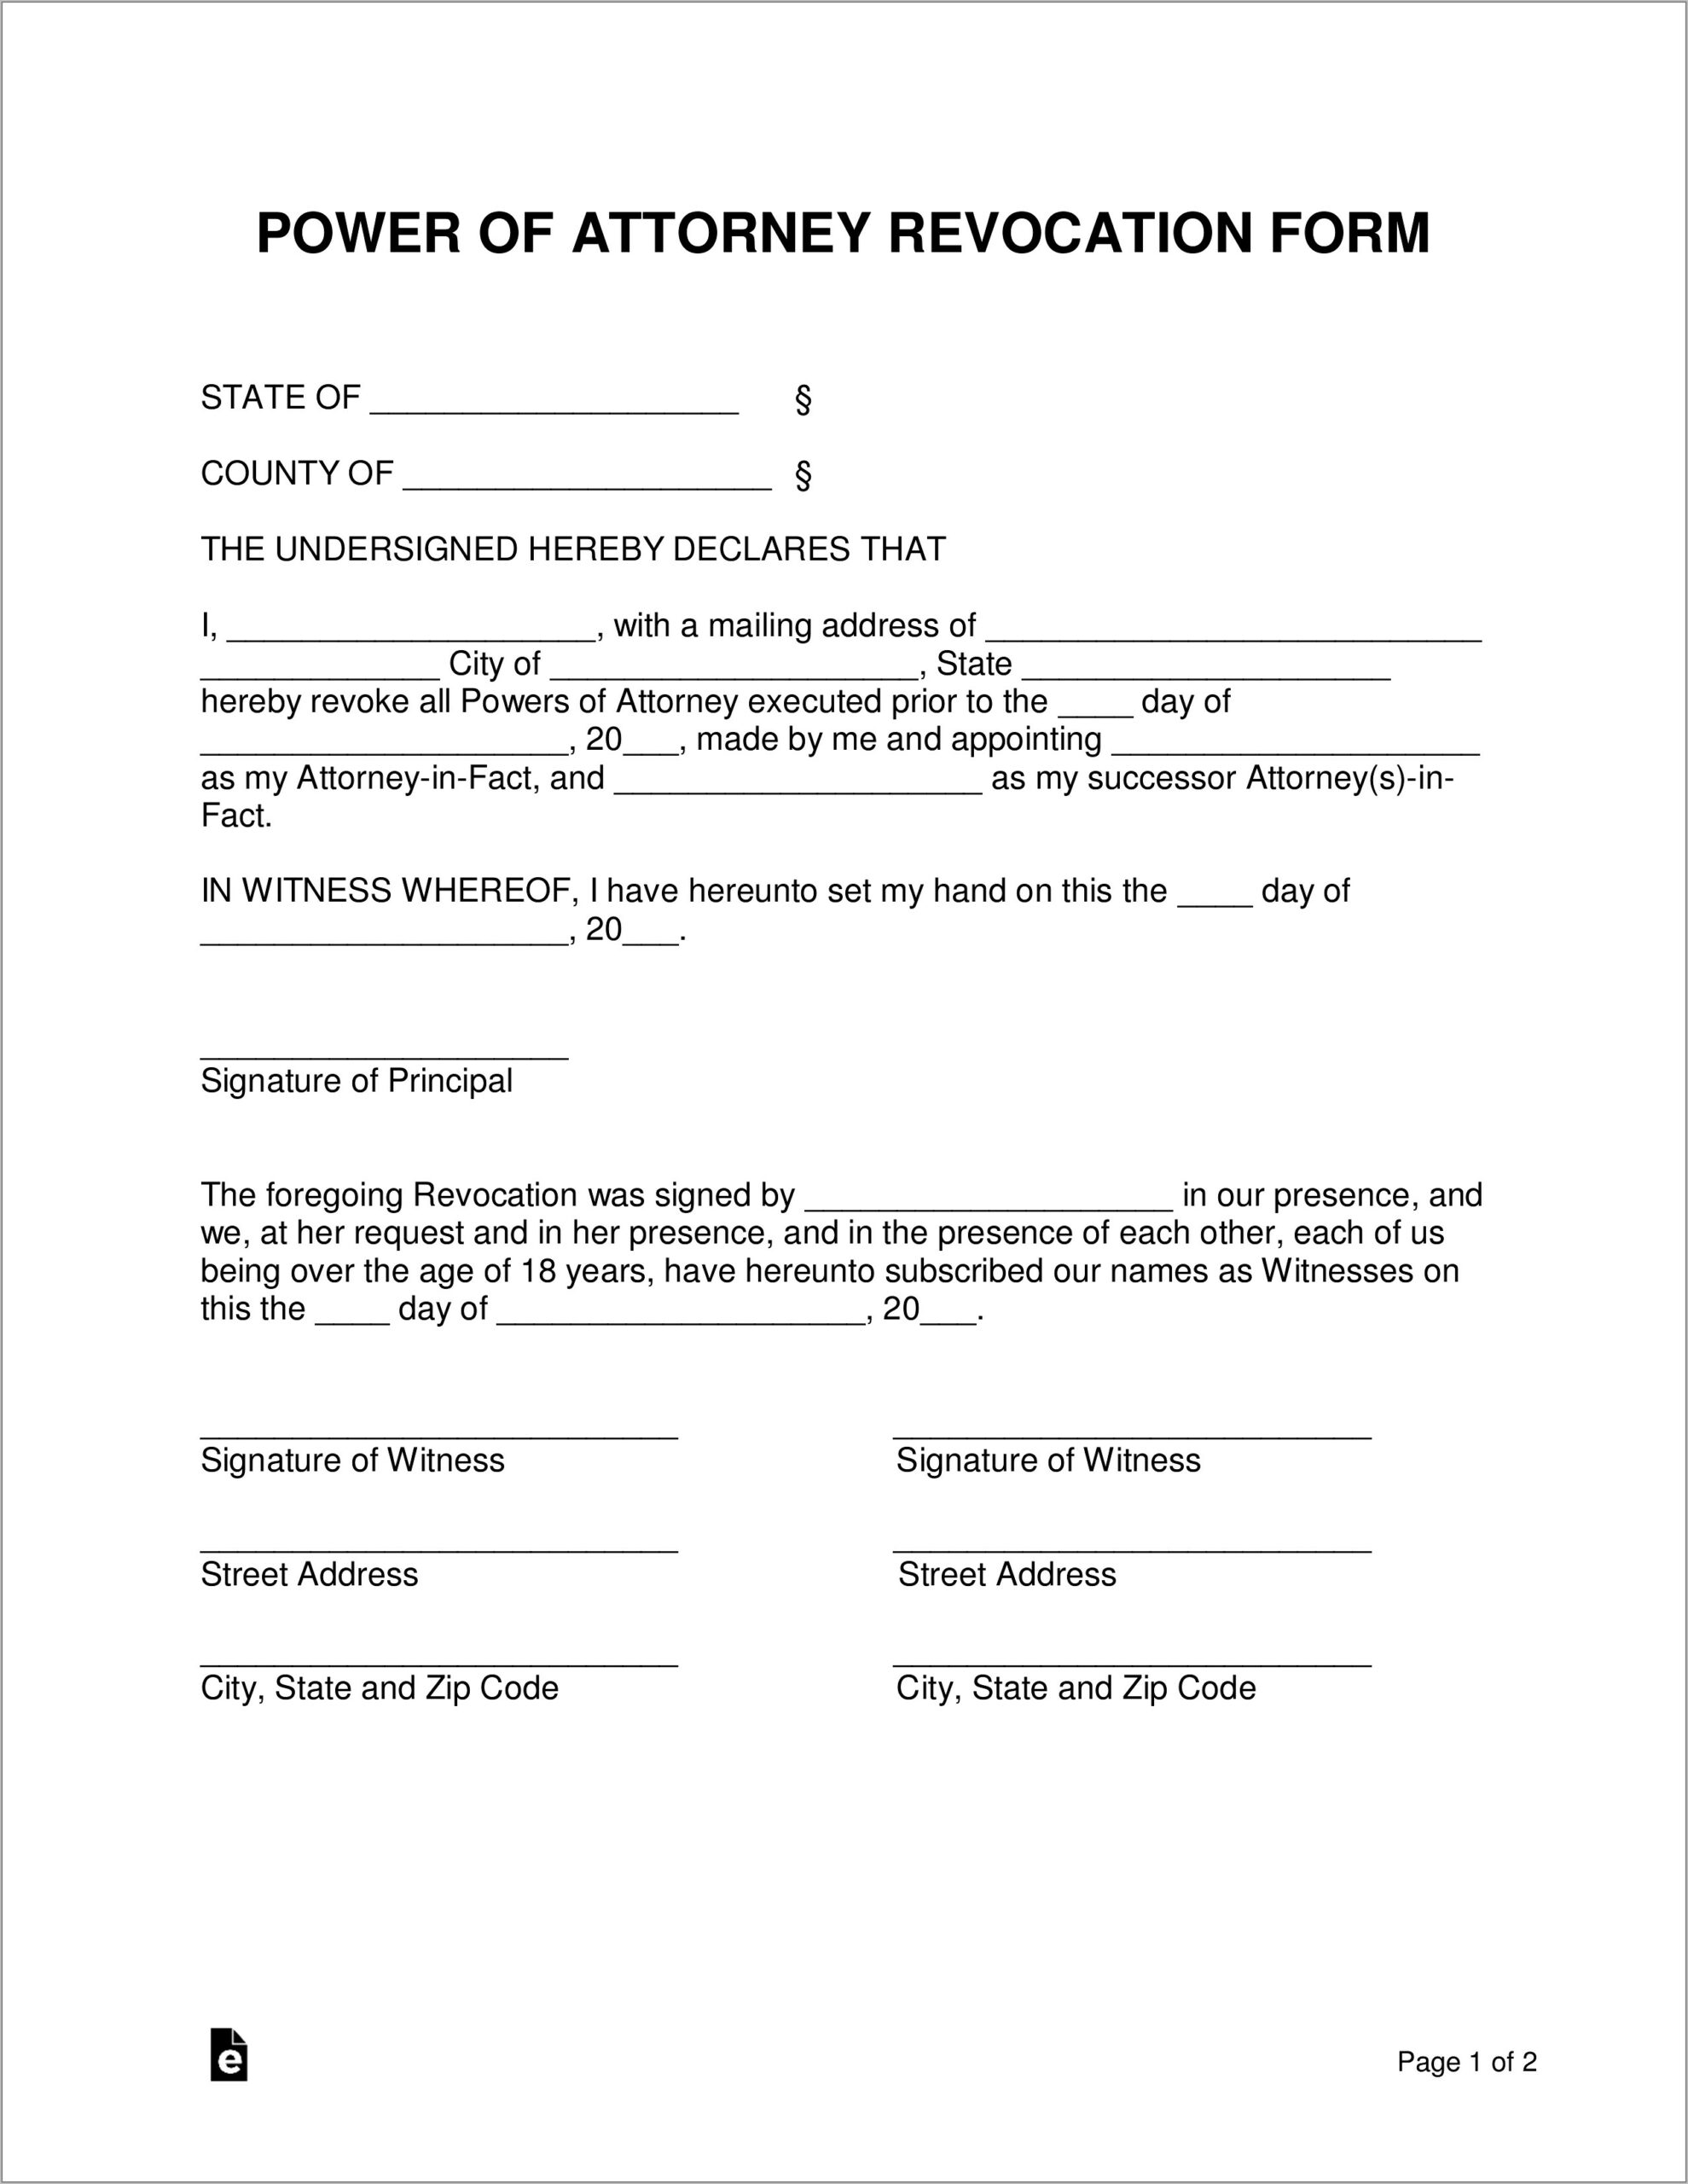 Template For Power Of Attorney